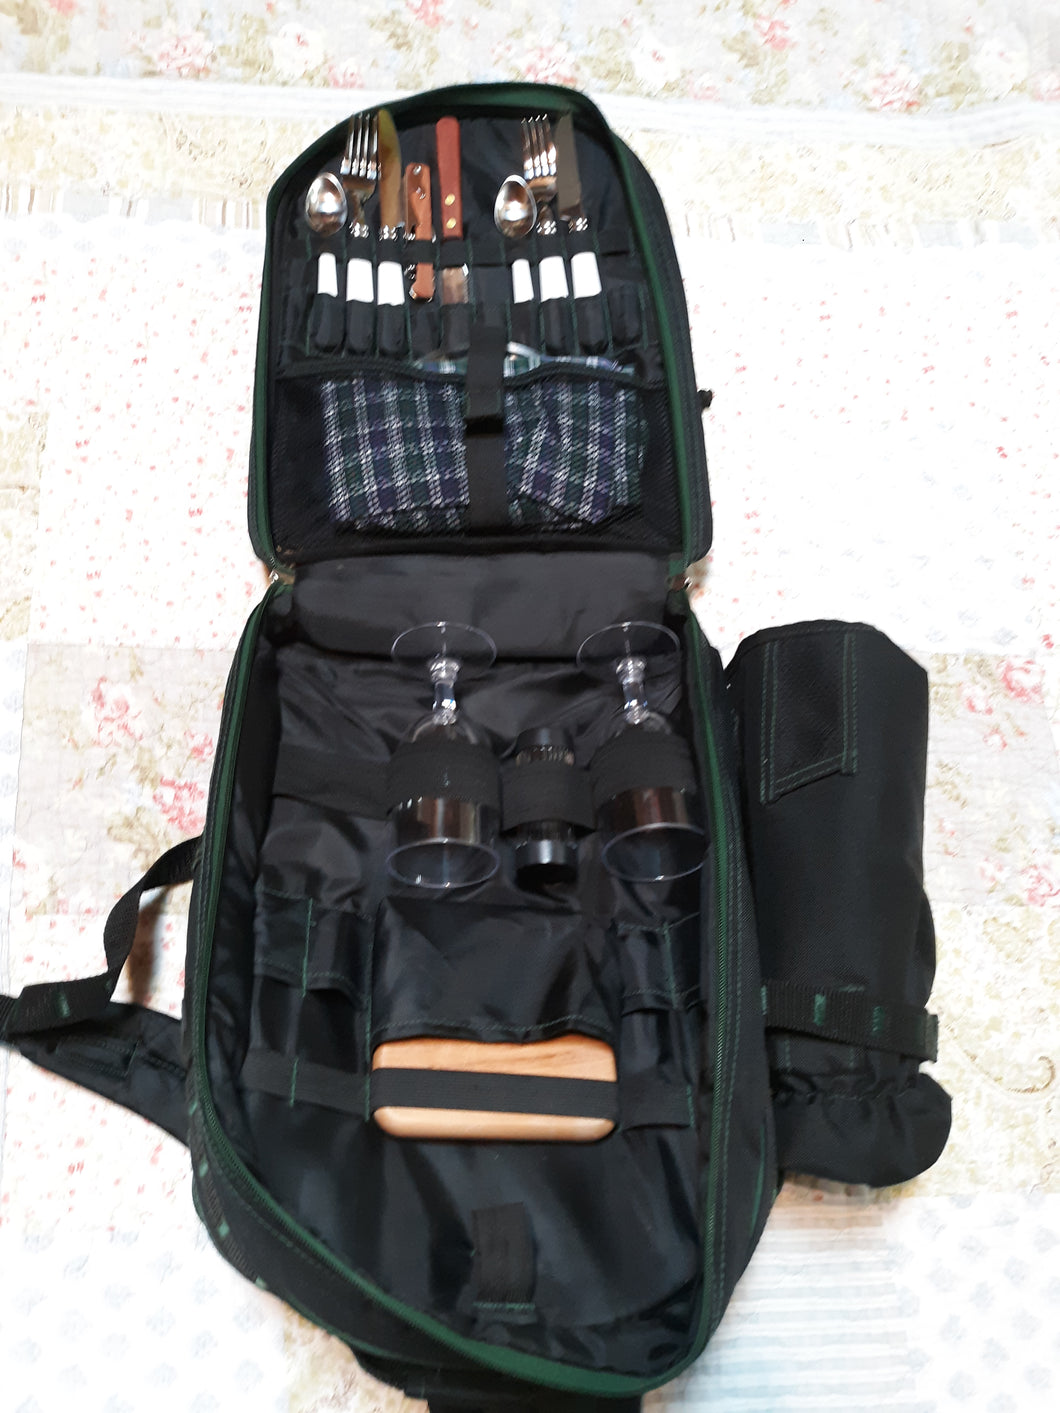 Outdoor Picnic Backpack with Cutlery Accessory